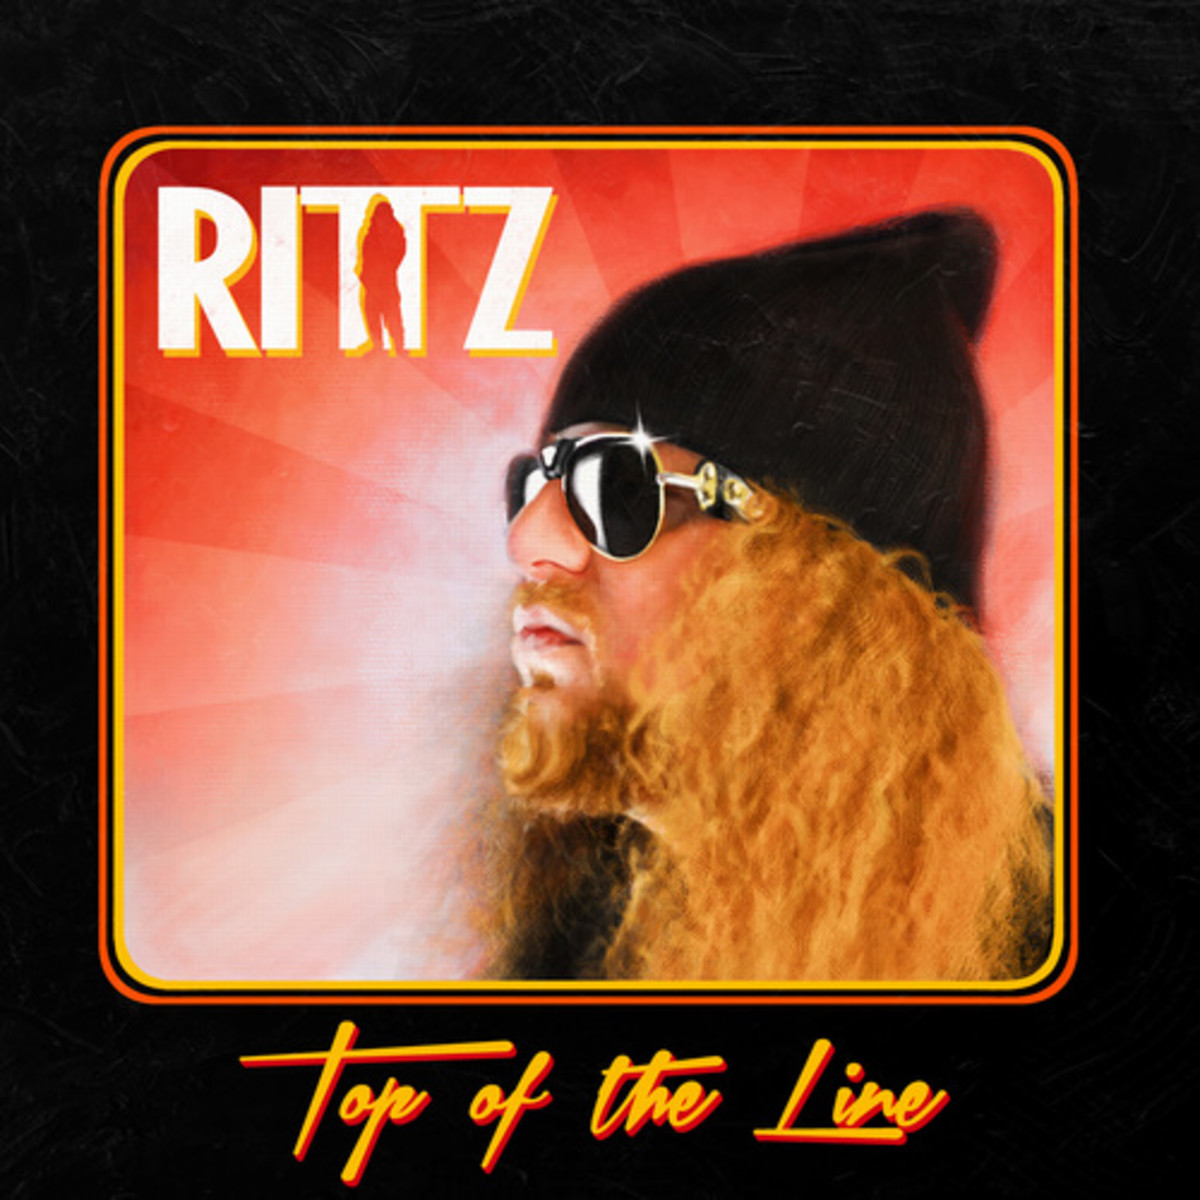 rittz-top-of-the-line.jpg